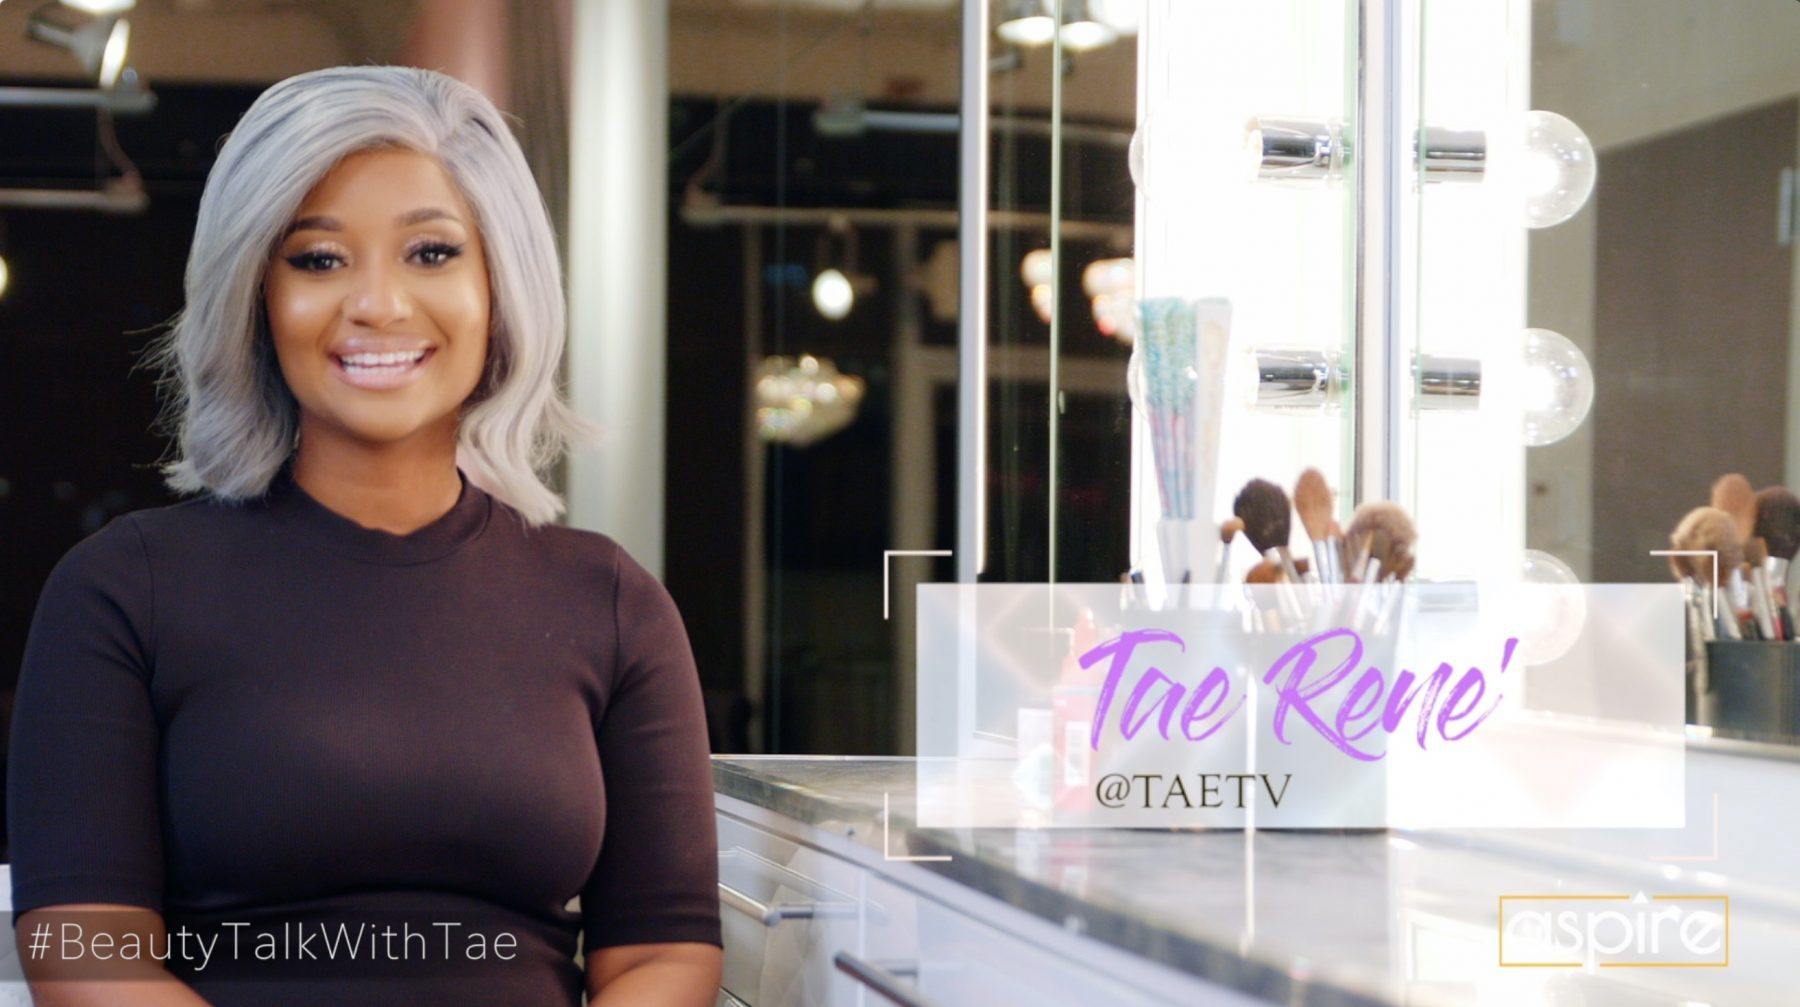 Beauty Talk With Tae: 3 Tips To Accentuate Your Face